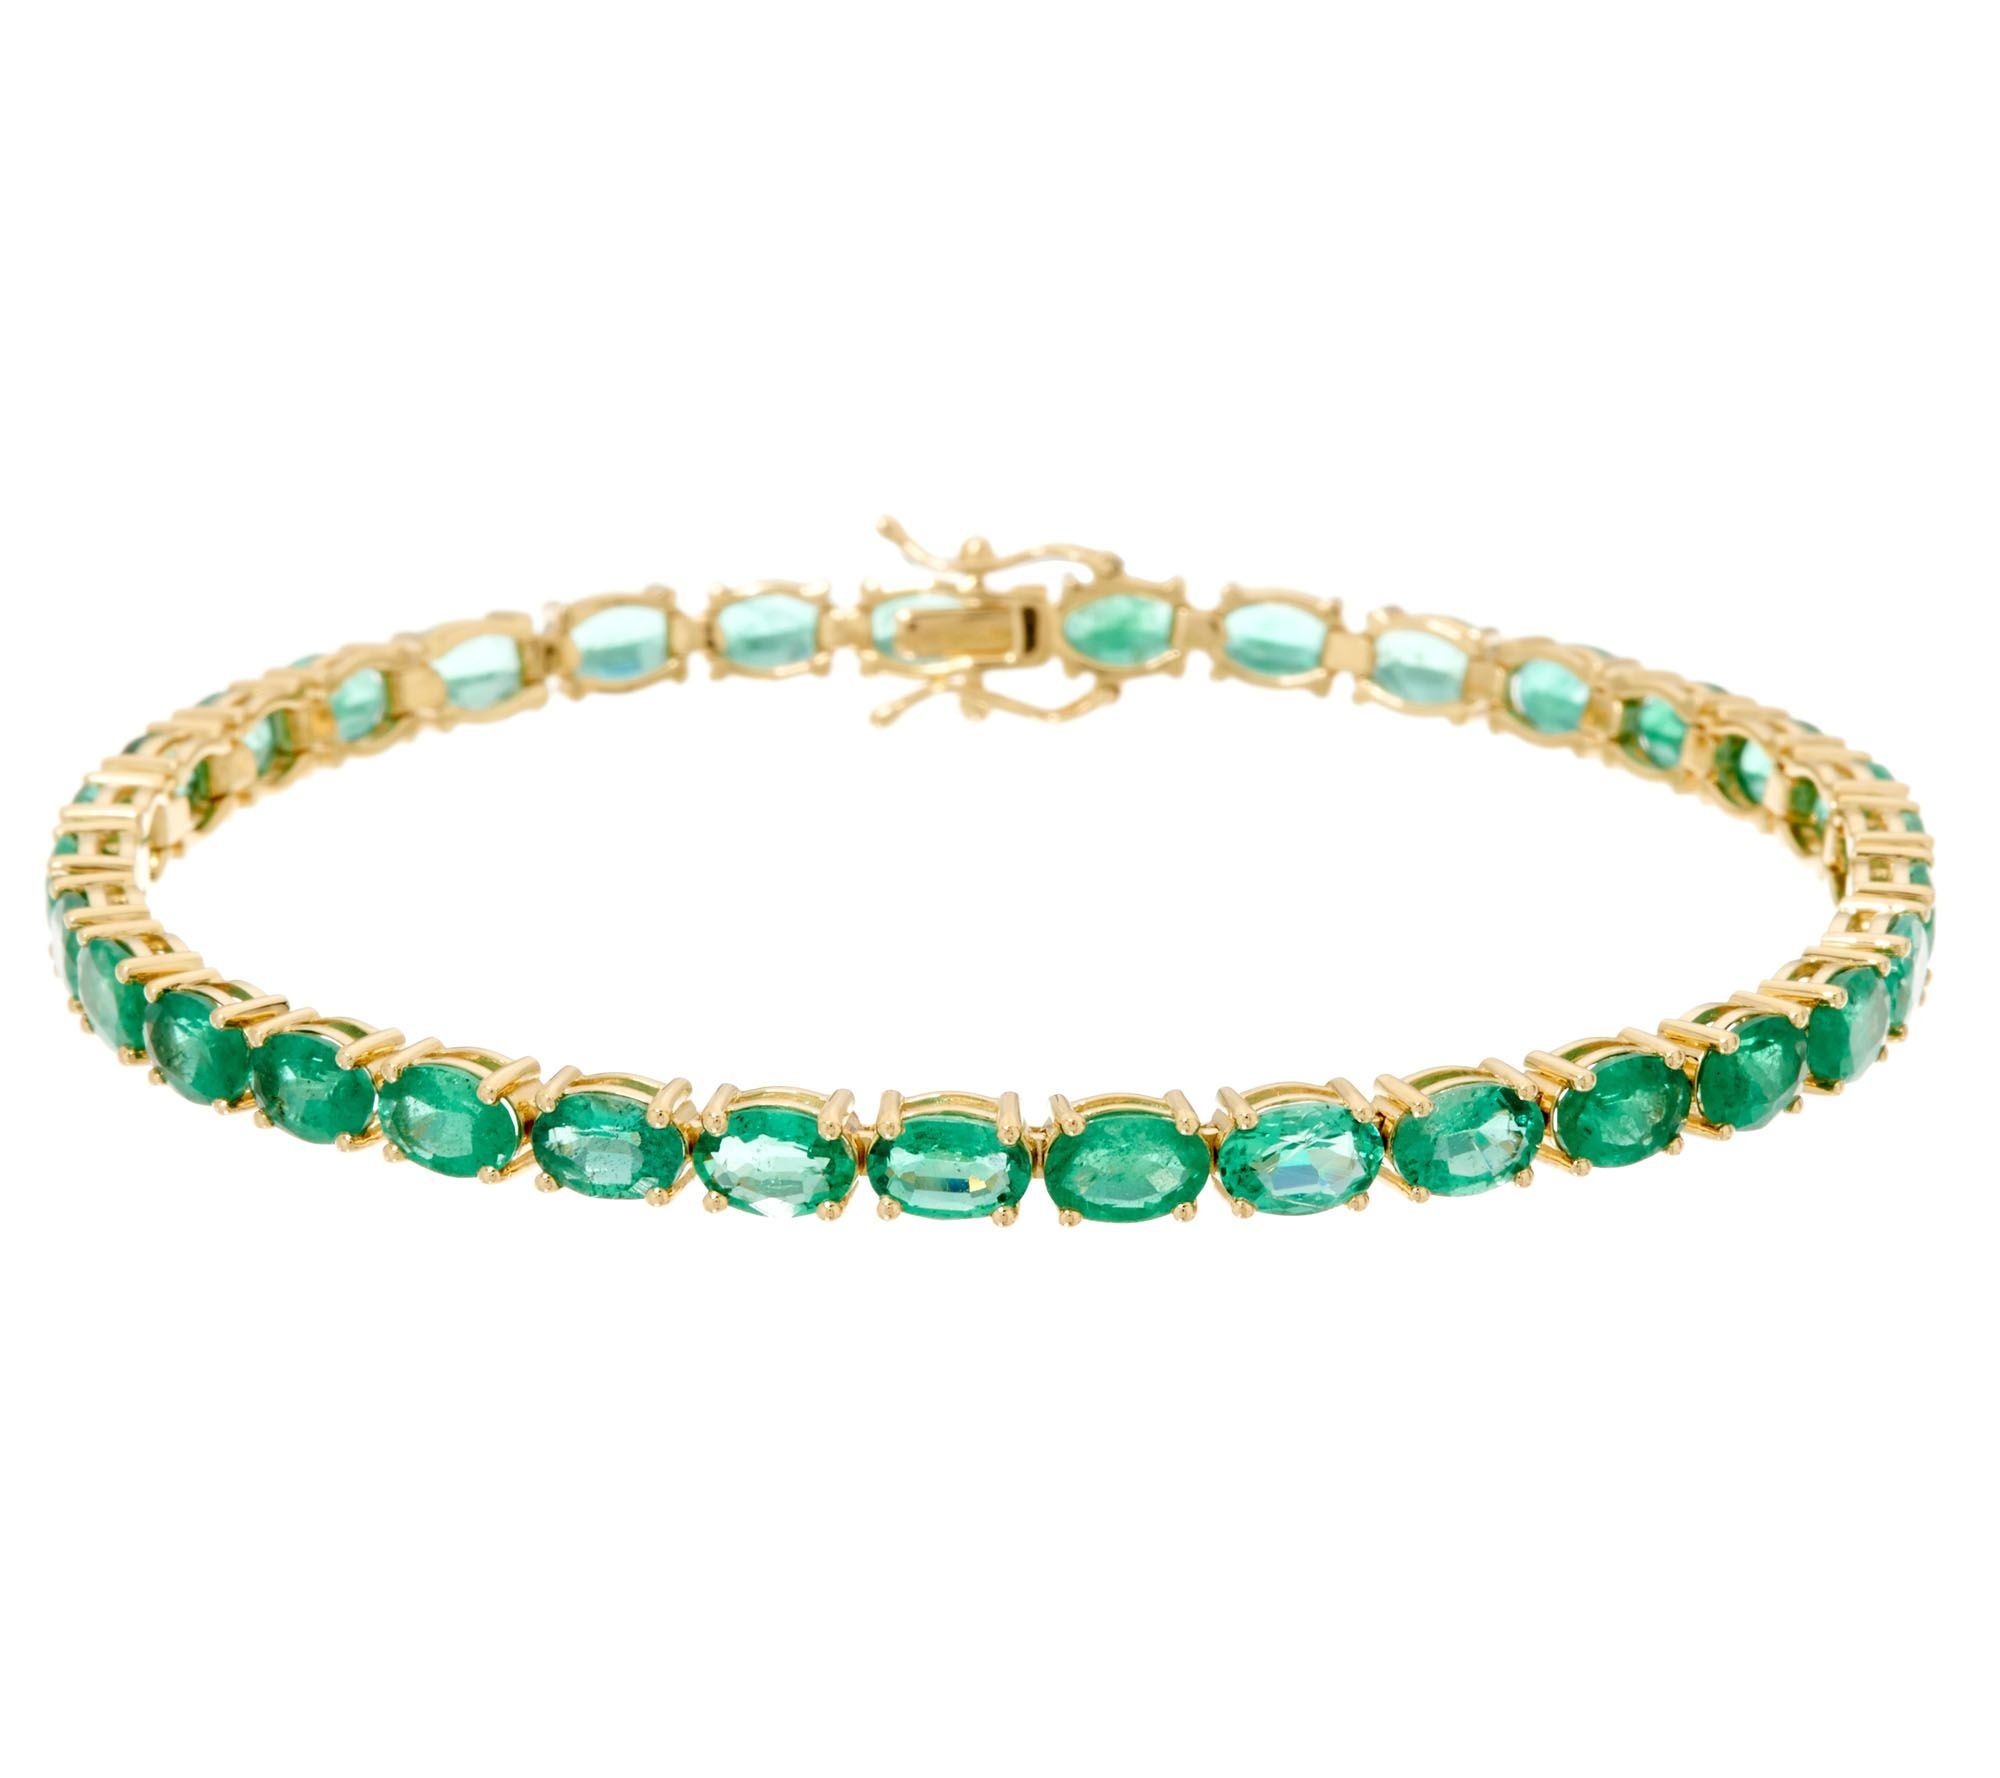 Smjewels Prong-Set Oval Cut Green Emerald Tennis Bracelet 14K Yellow Gold Plated Sterling